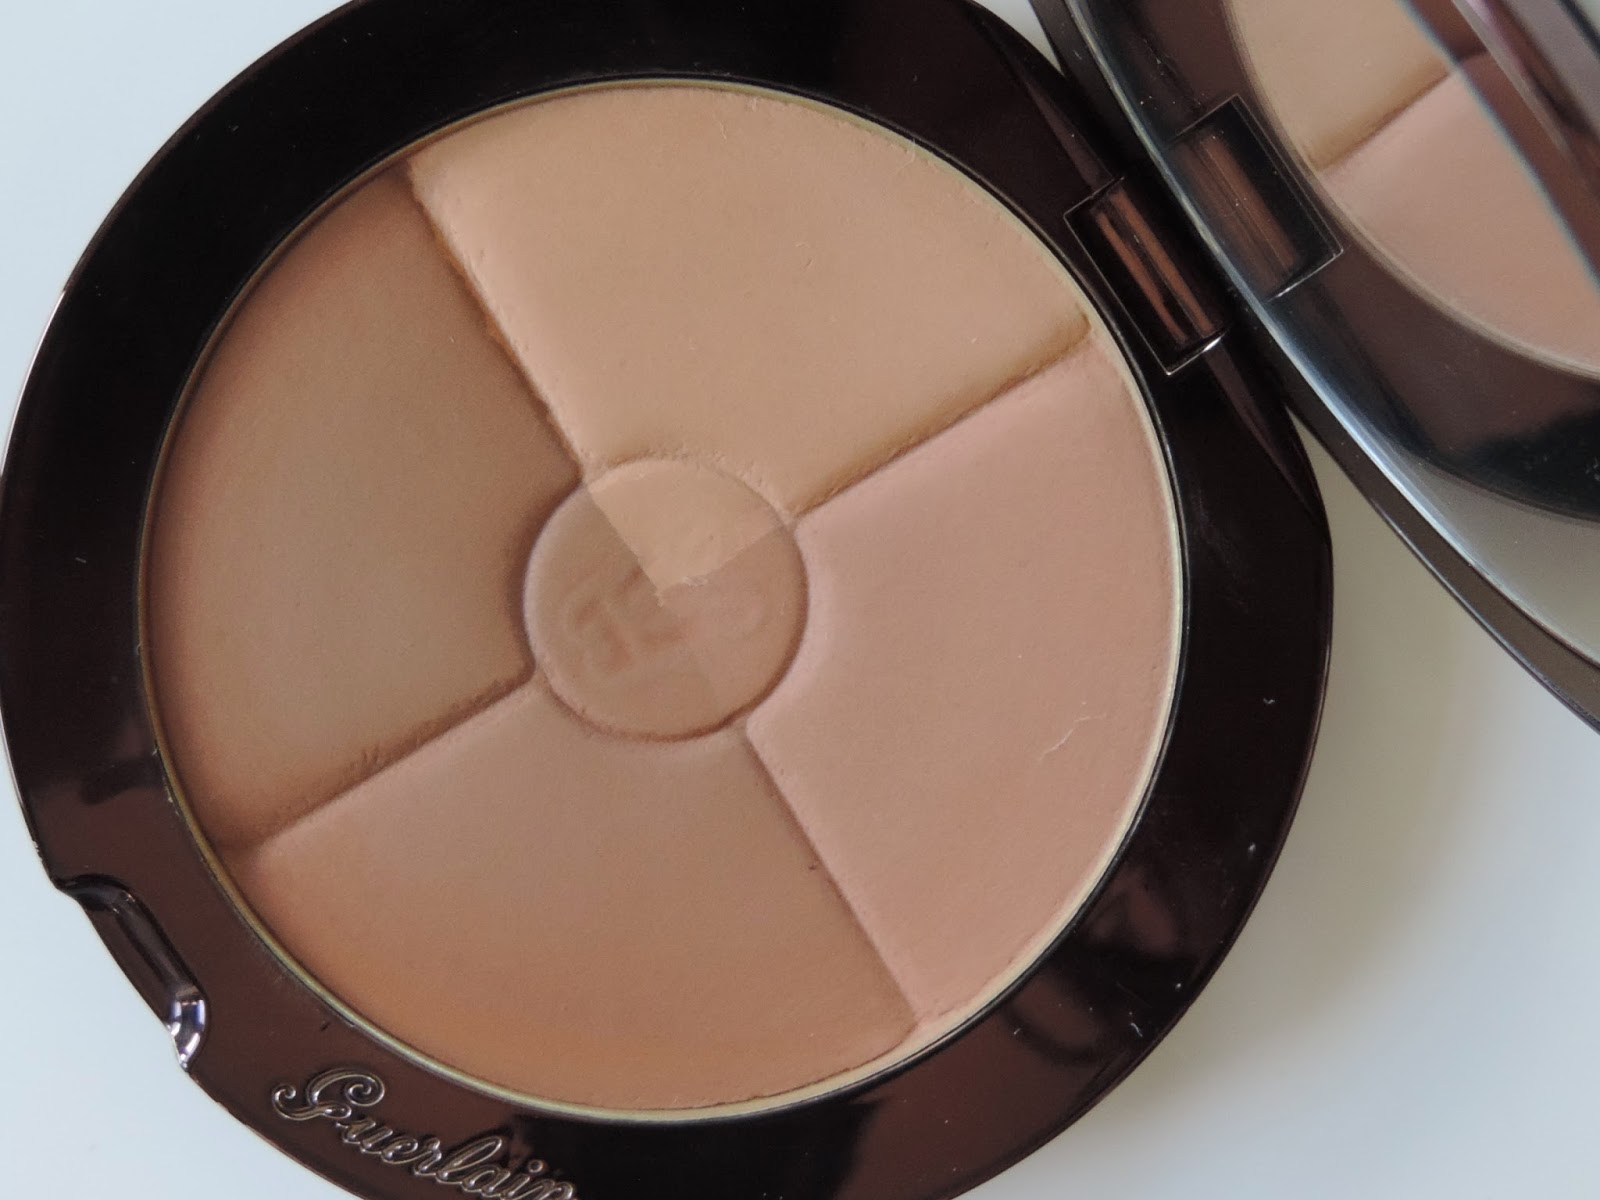 Guerlain Terracotta Four seasons Bronzer in 02 Brunette